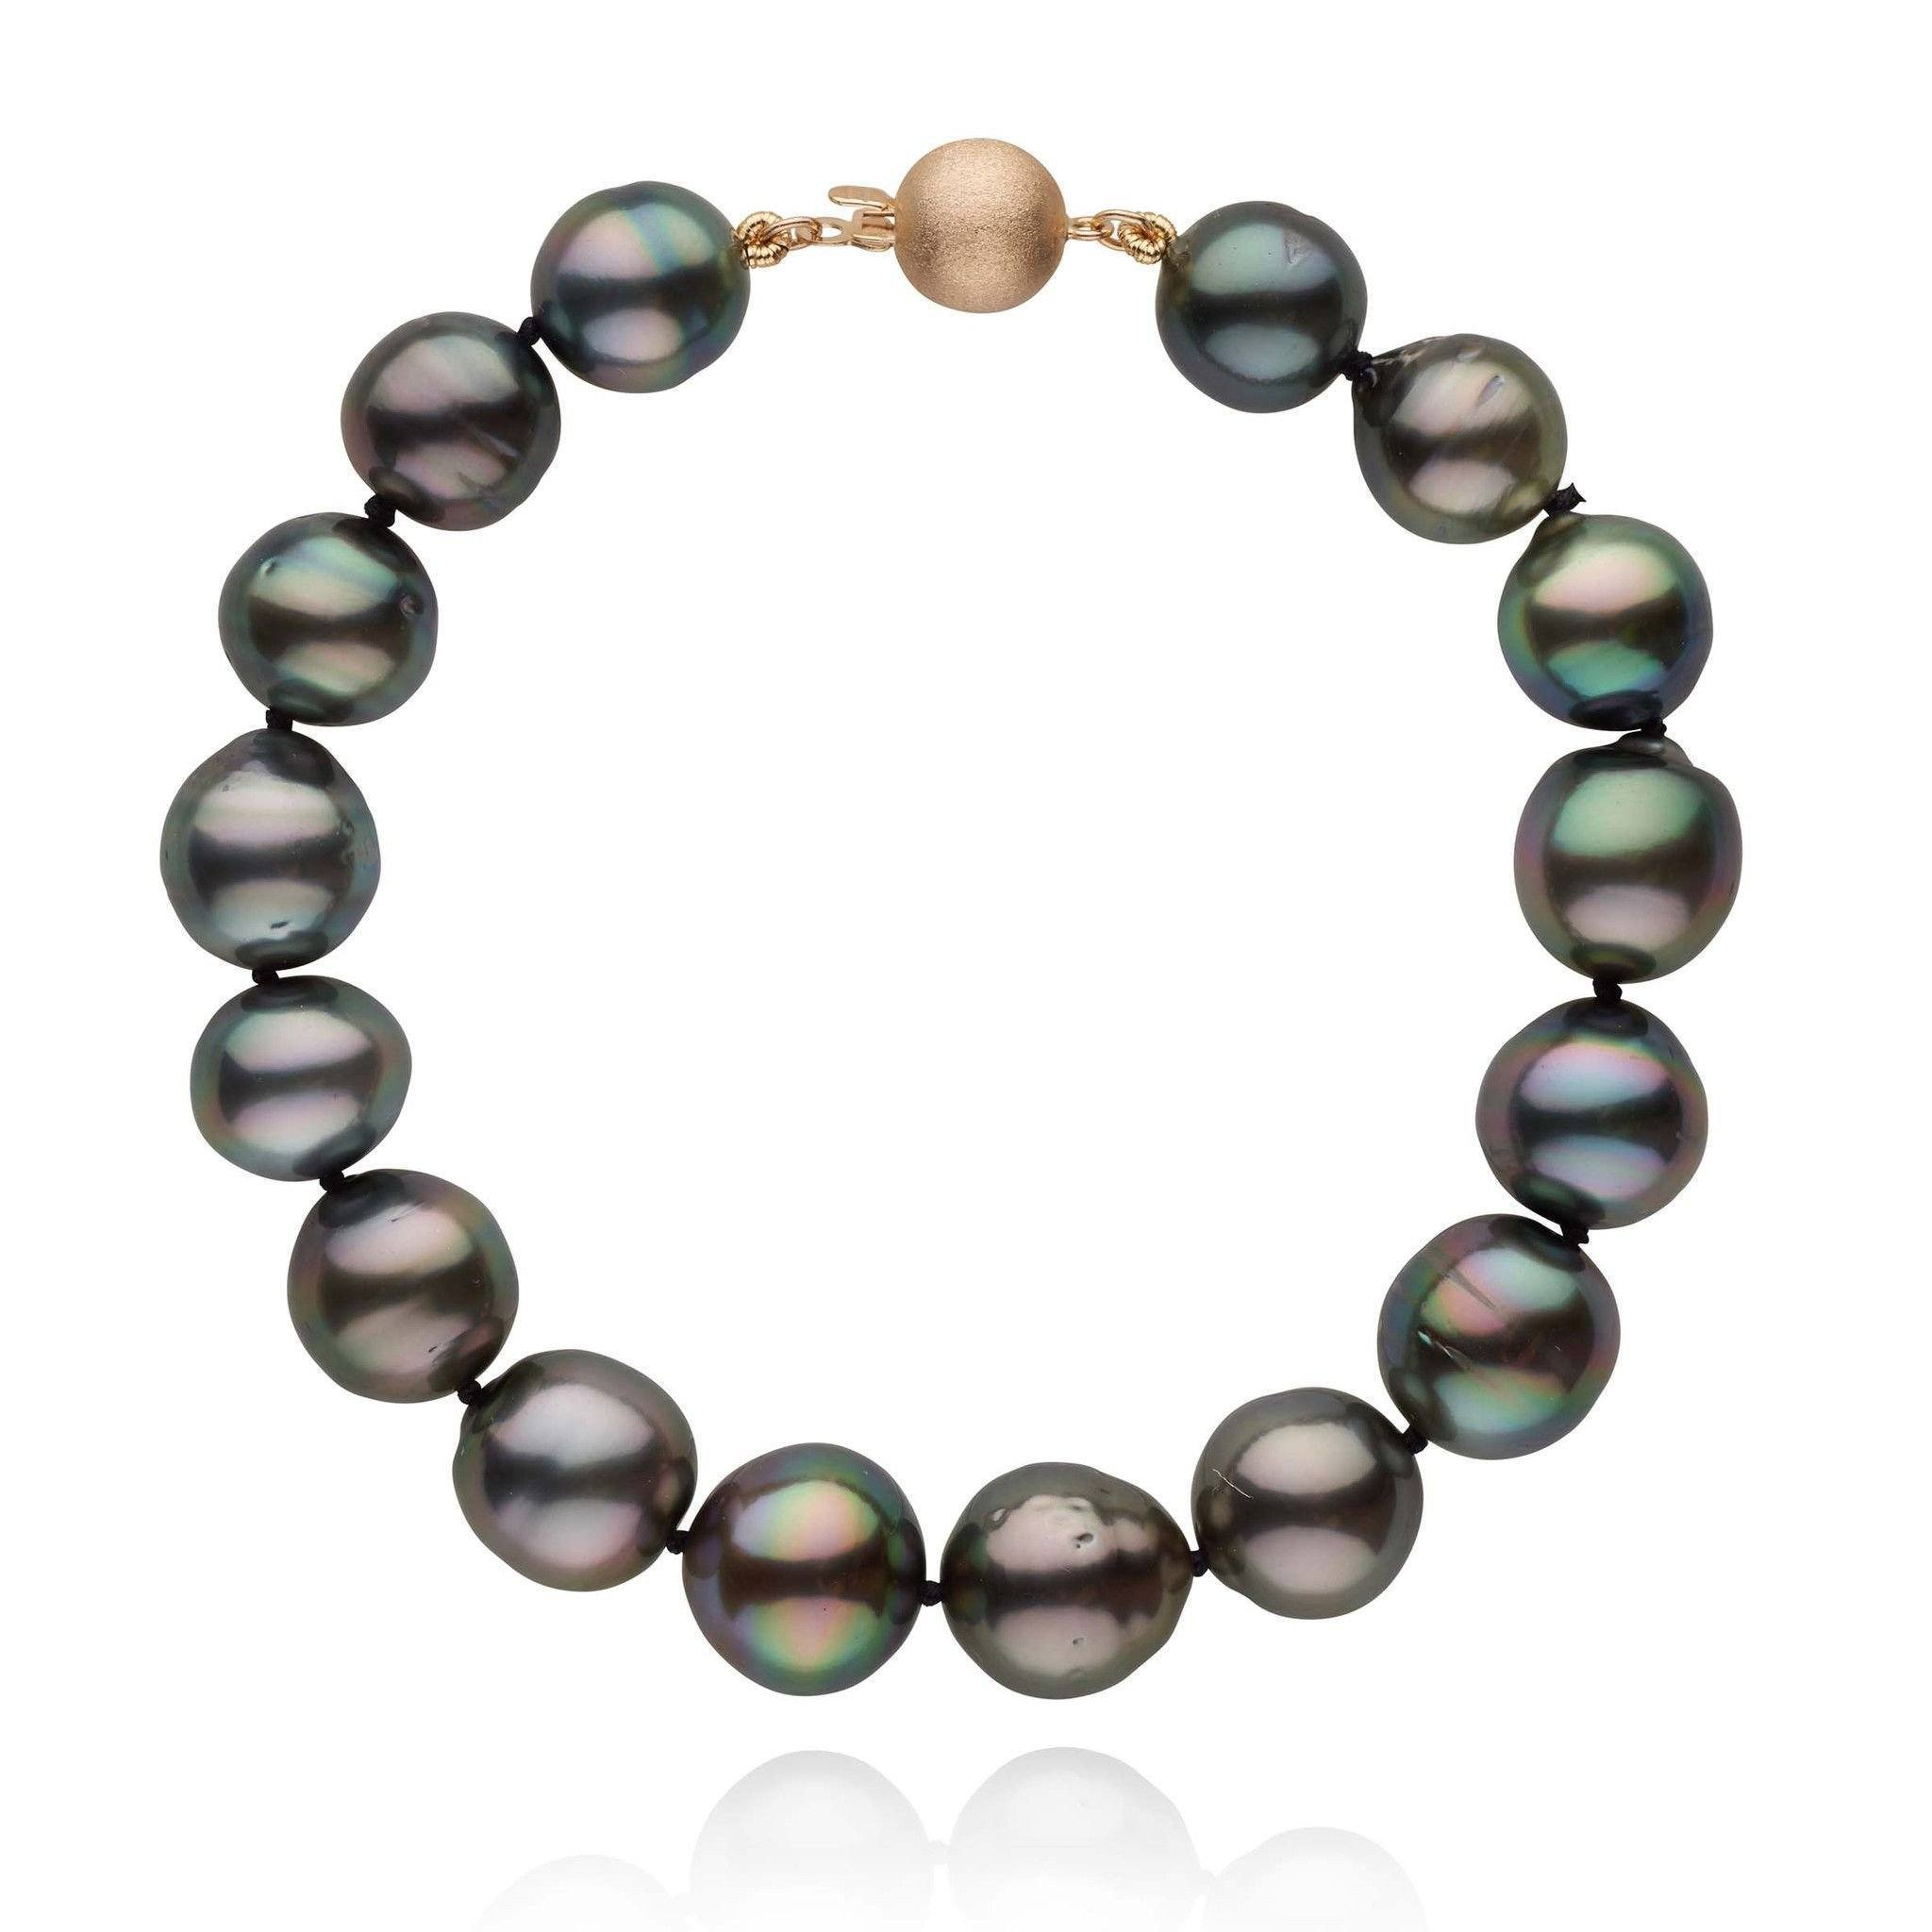 8.0-10.5 mm Tahitian Drop Pearl Bracelet